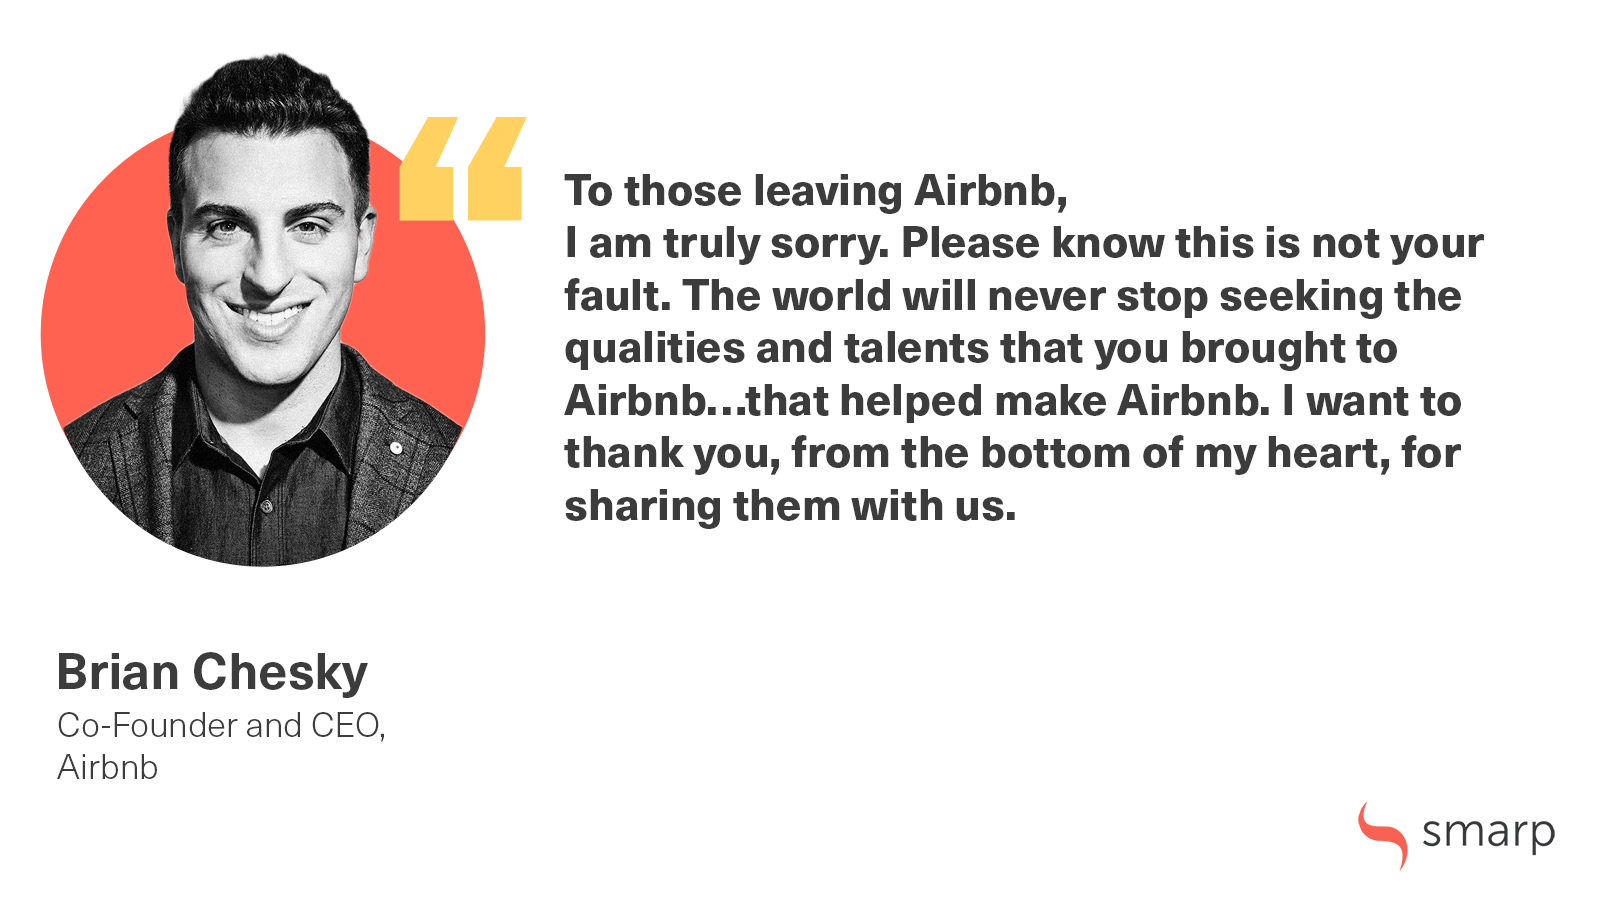 Brian Chesky airbnb smarp quote w